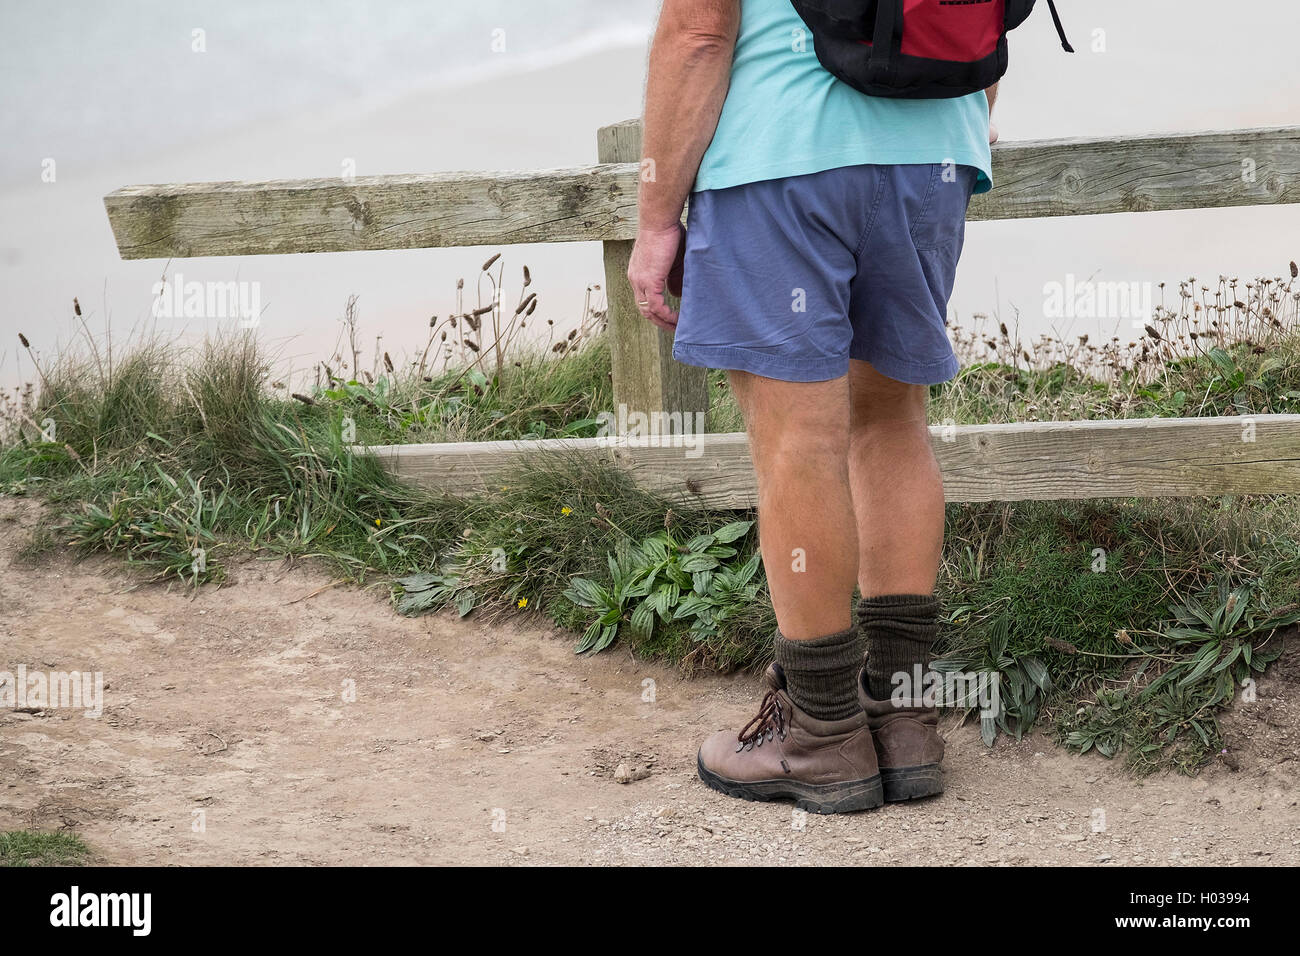 A walker takes a break on the South West Coastal Path in Cornwall. - Stock Image